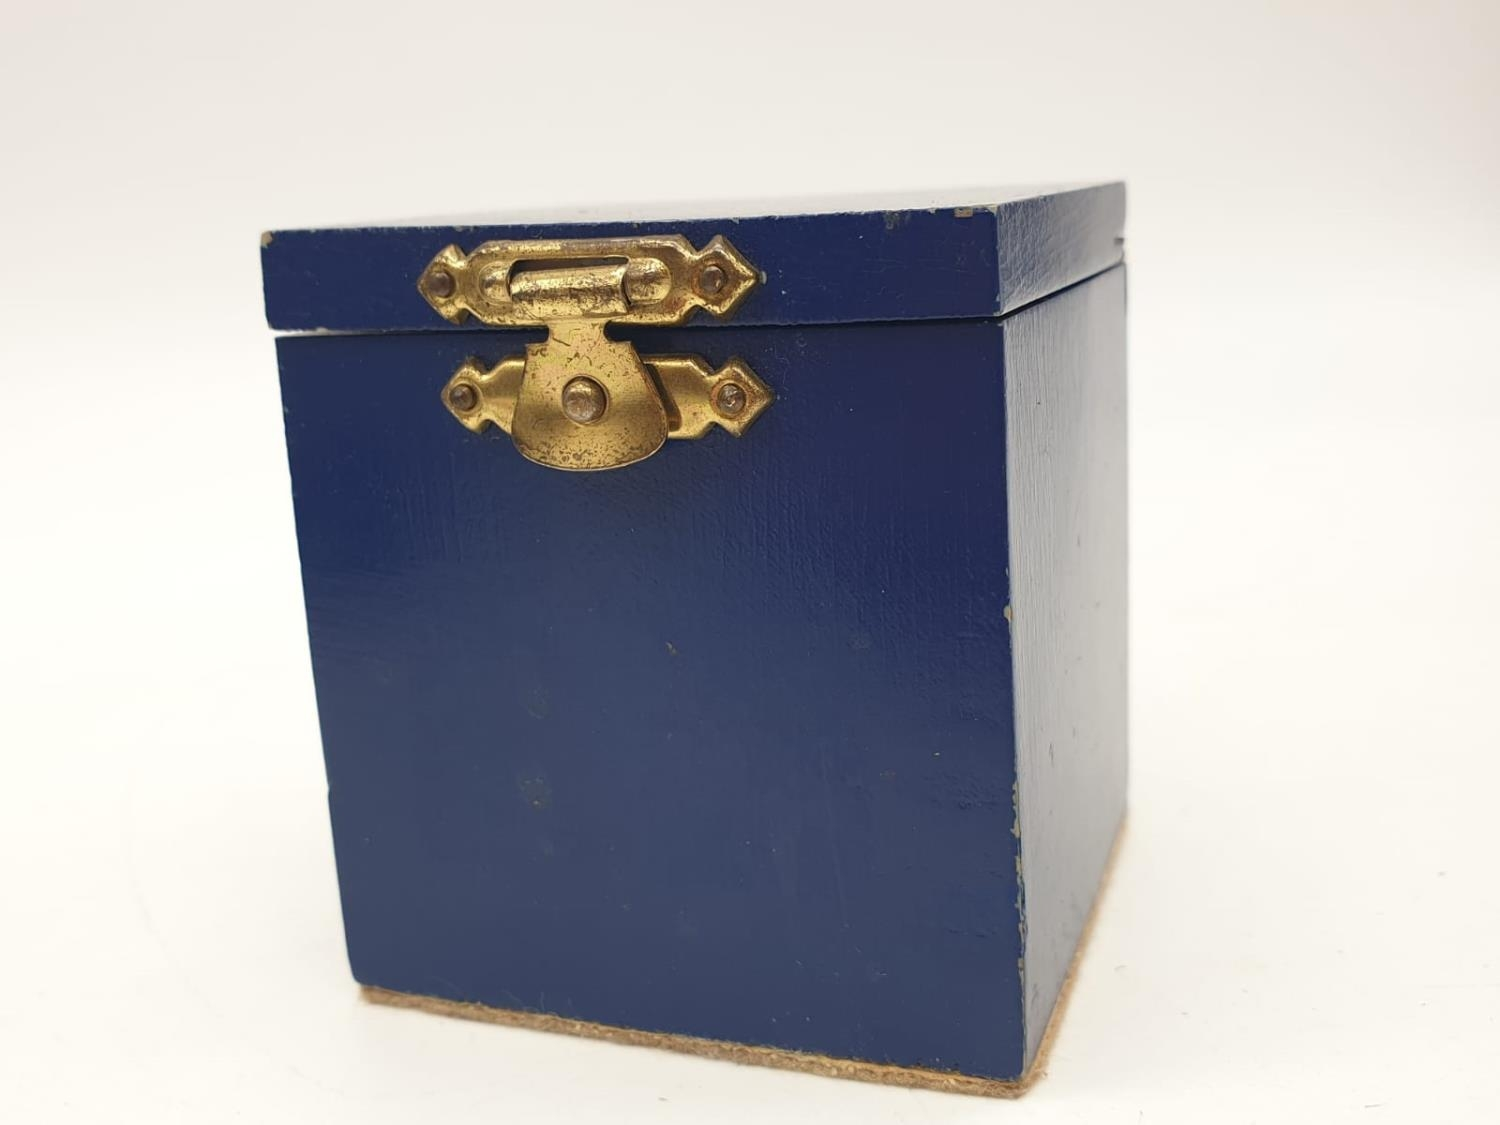 Liberties of London 'Jack in the box'. Size 6.5cm x 5cm. - Image 2 of 4